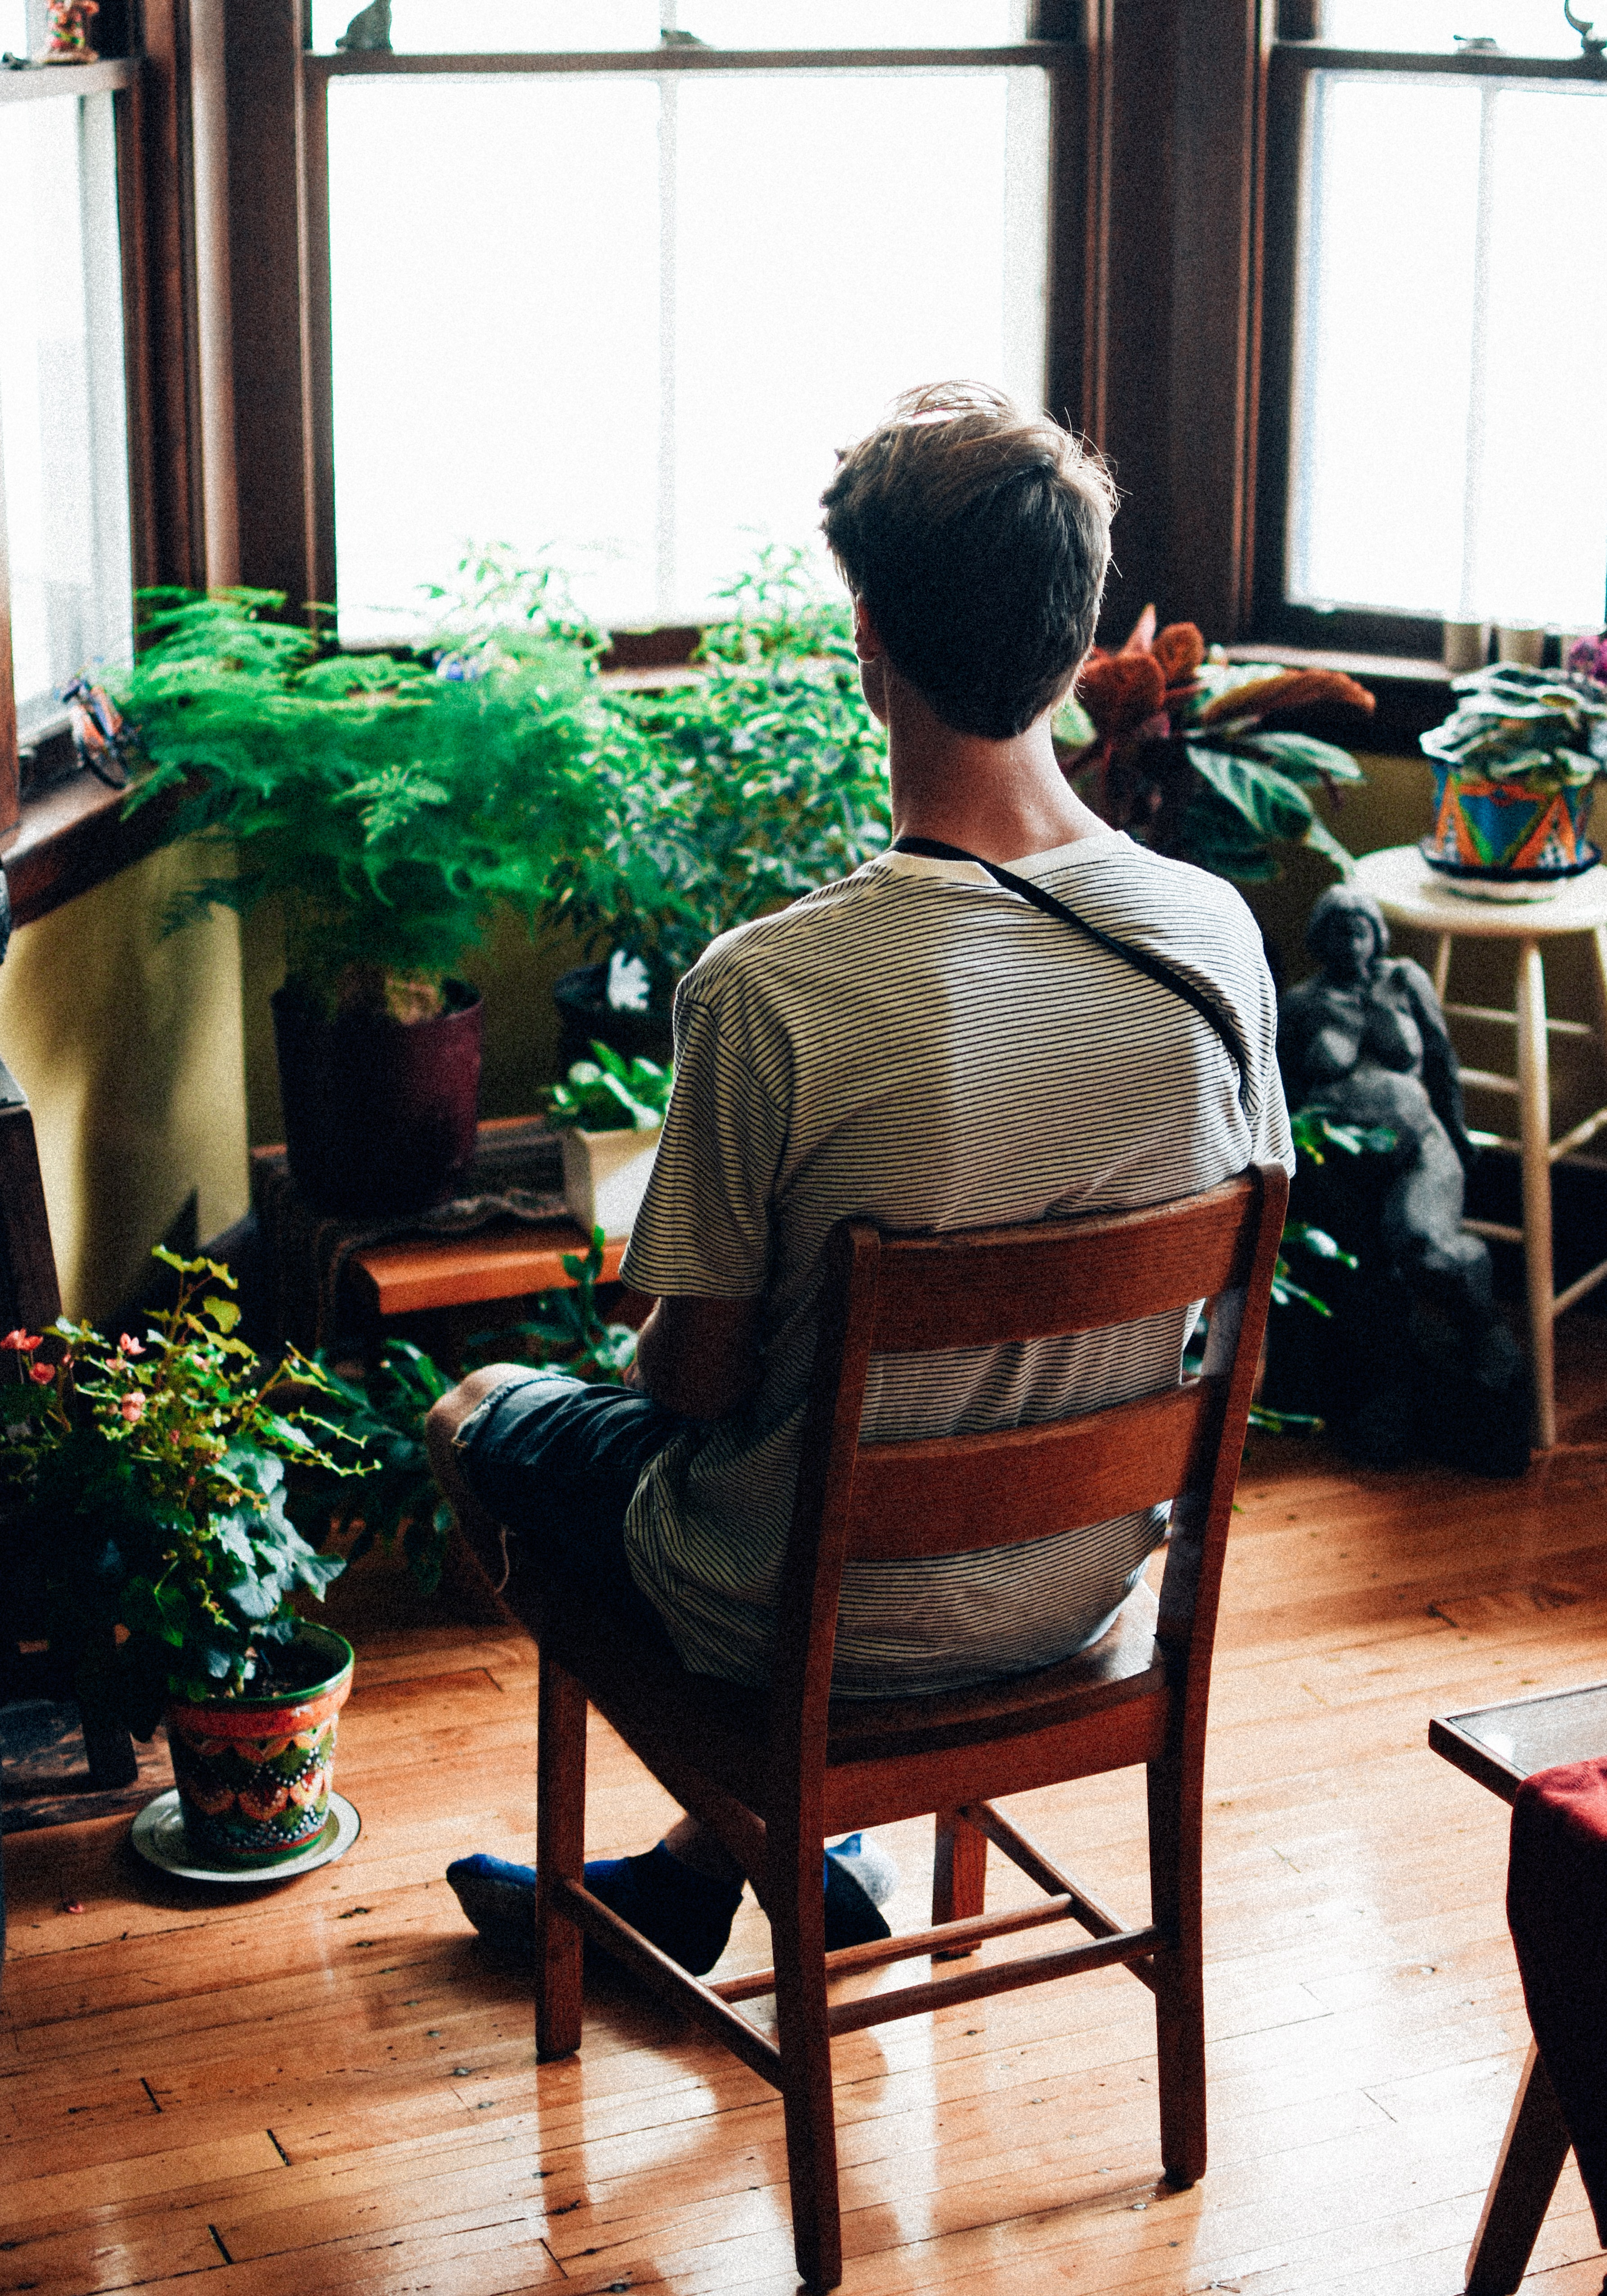 Person person sits with back to camera staring at house plants